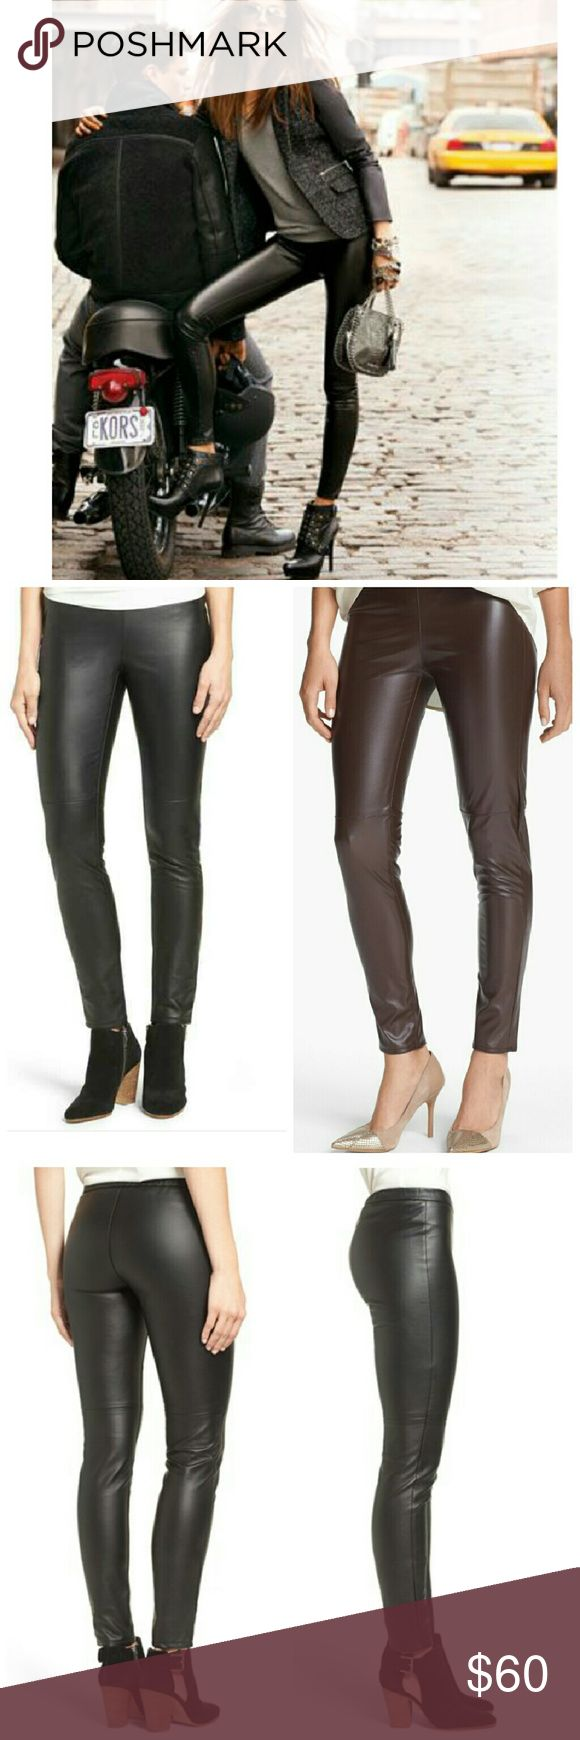 Michael Kors faux leather leggings Beautiful high quality side zipper leggings. Very flattering fit and so versatile. Throw them on with boots and a sweater for cool casual or with a slinky top and heels for a night out. Michael Kors Pants Leggings